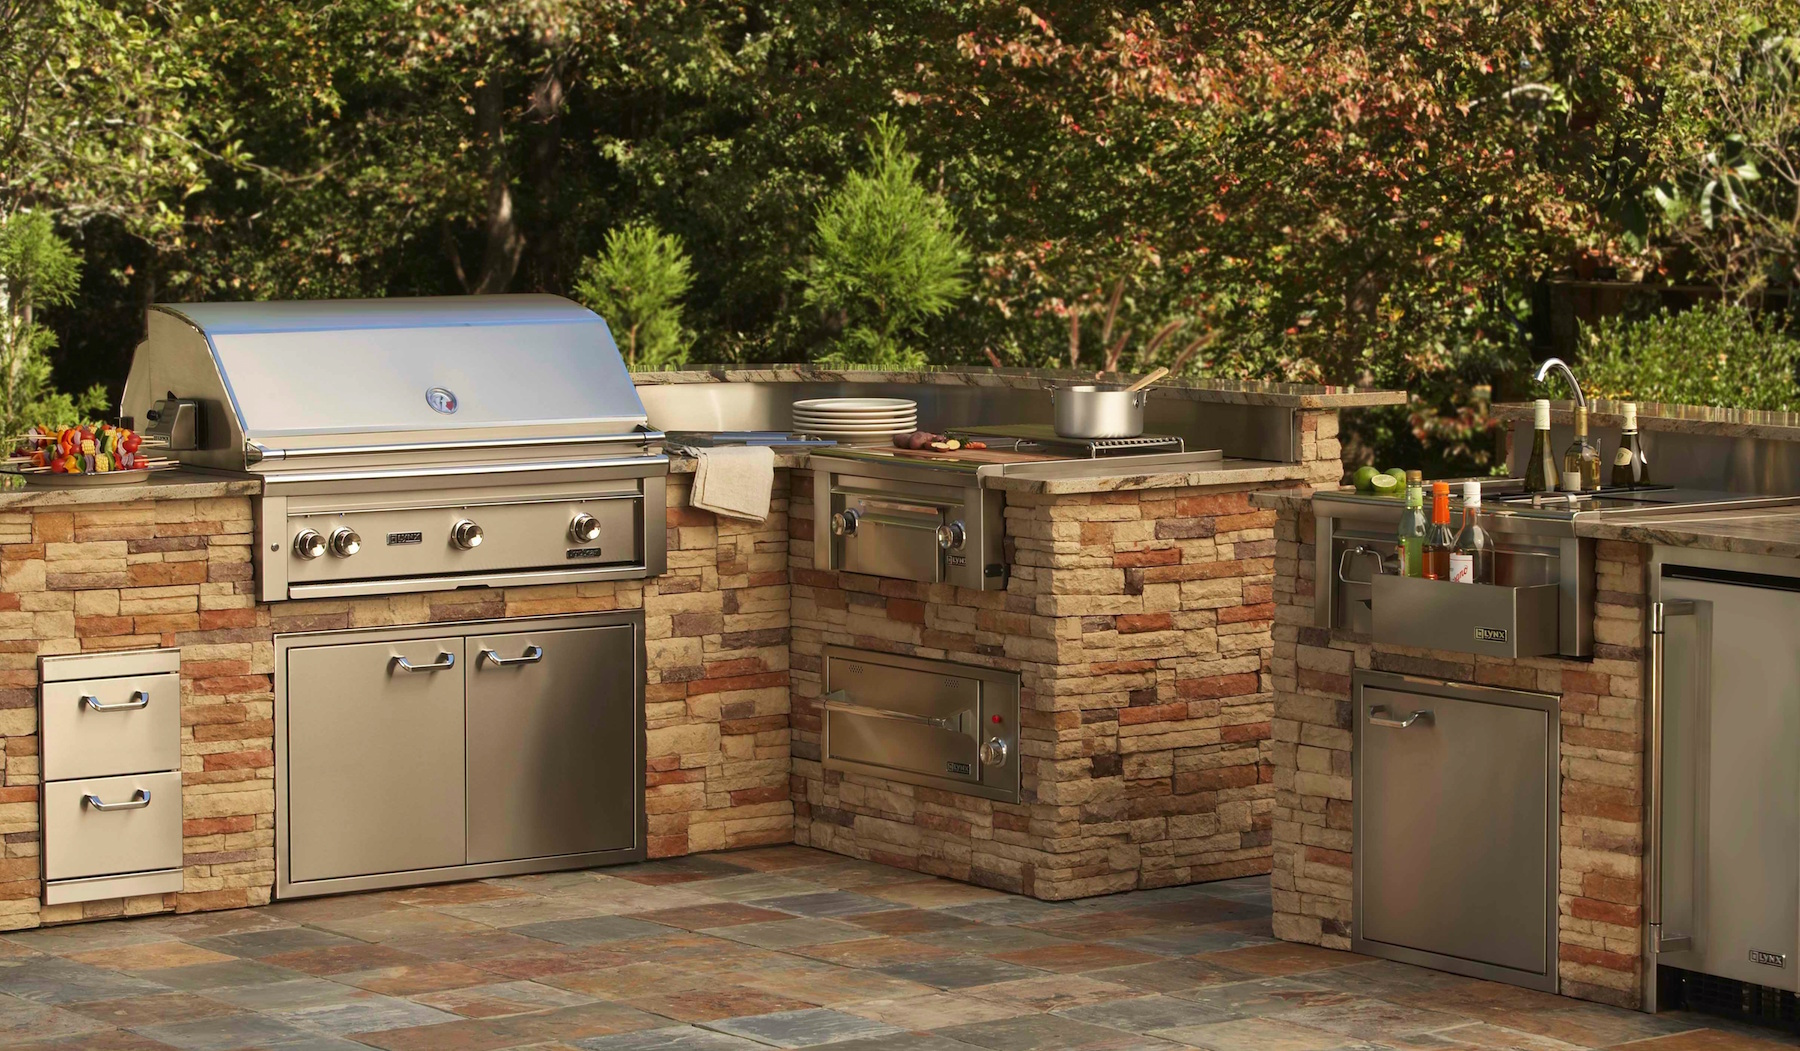 Choosing a professional barbecue grill for your outdoor for Outdoor barbecue grill designs